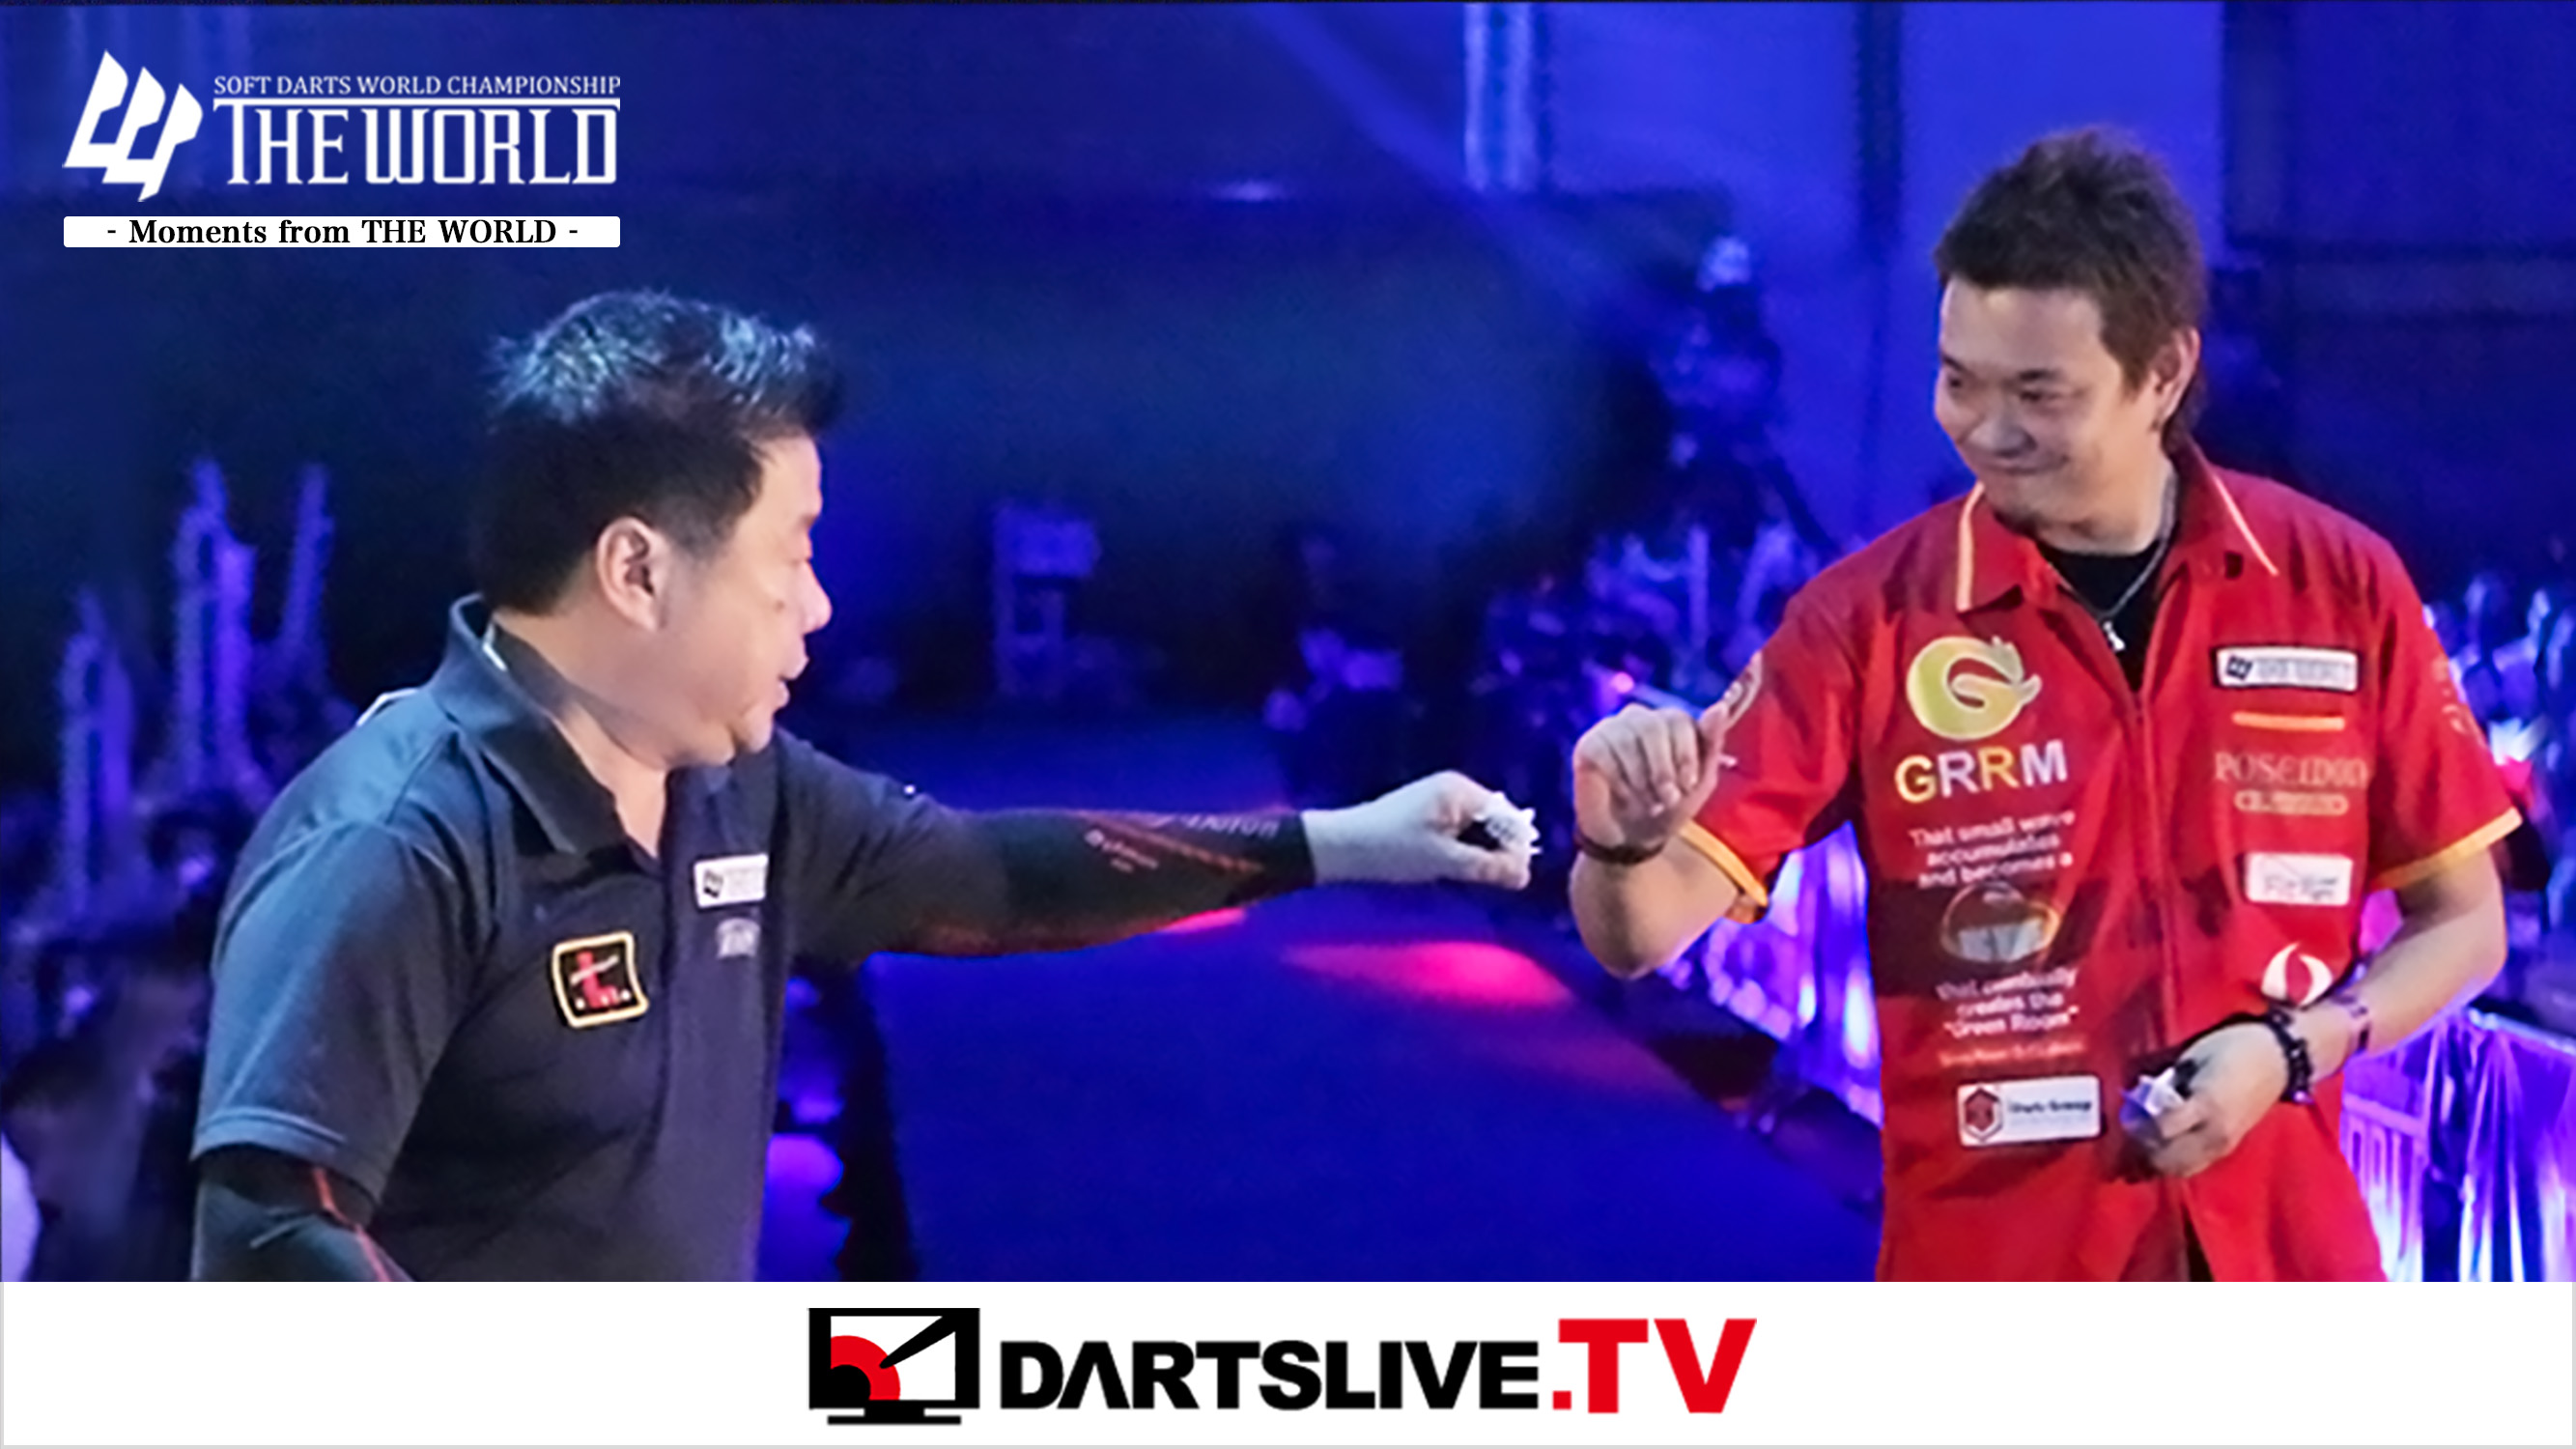 Takehiro Suzuki vs Paul Lim【DARTSLIVE.TV】